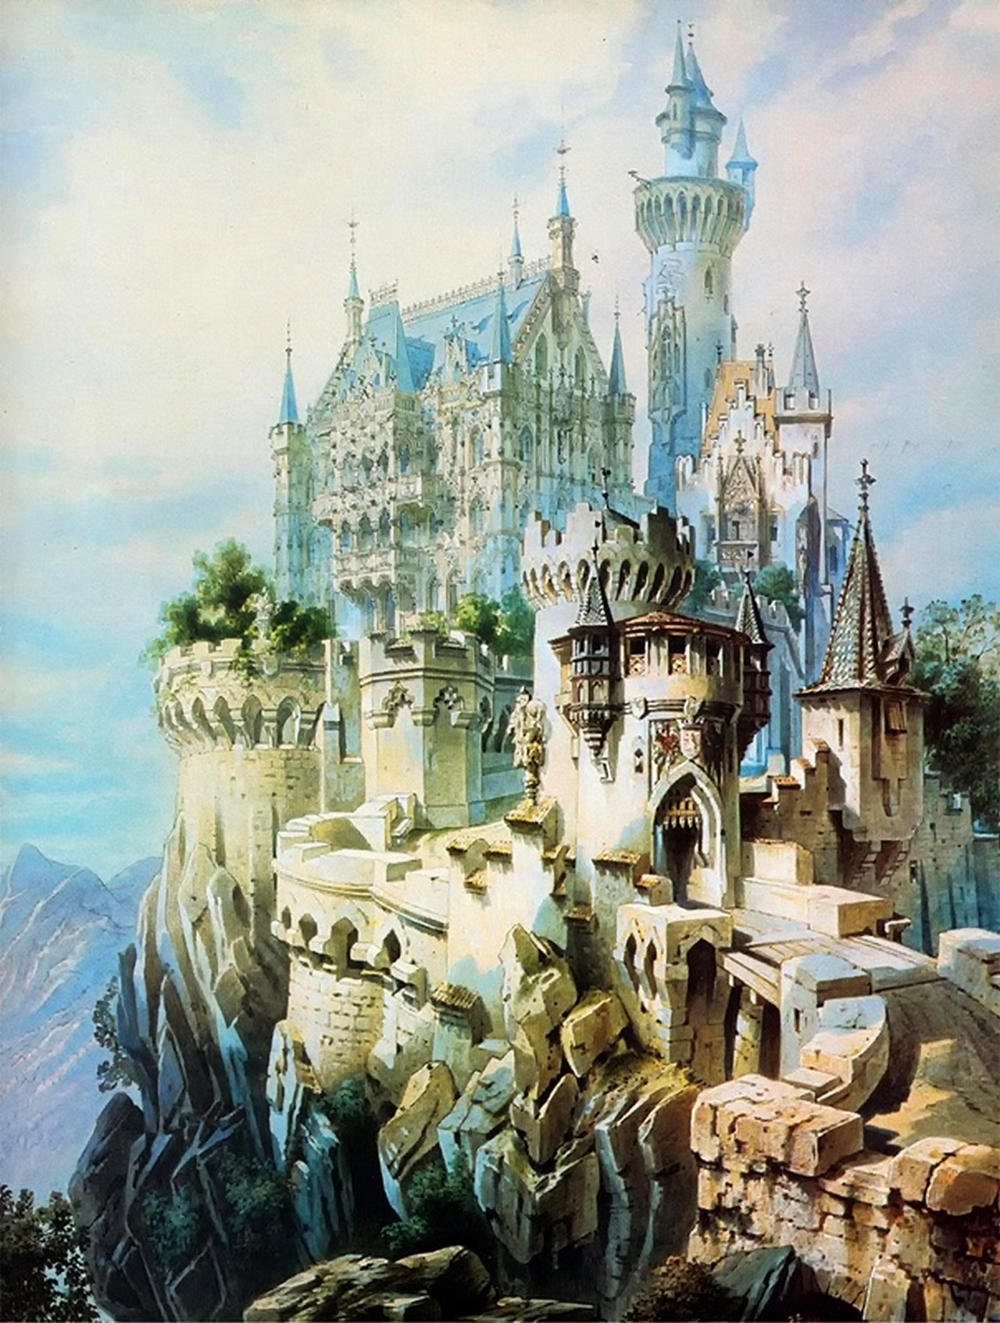 The fairytale dream concept for Falkenstein Castle of Ludwig II and Christian Jank, 1883